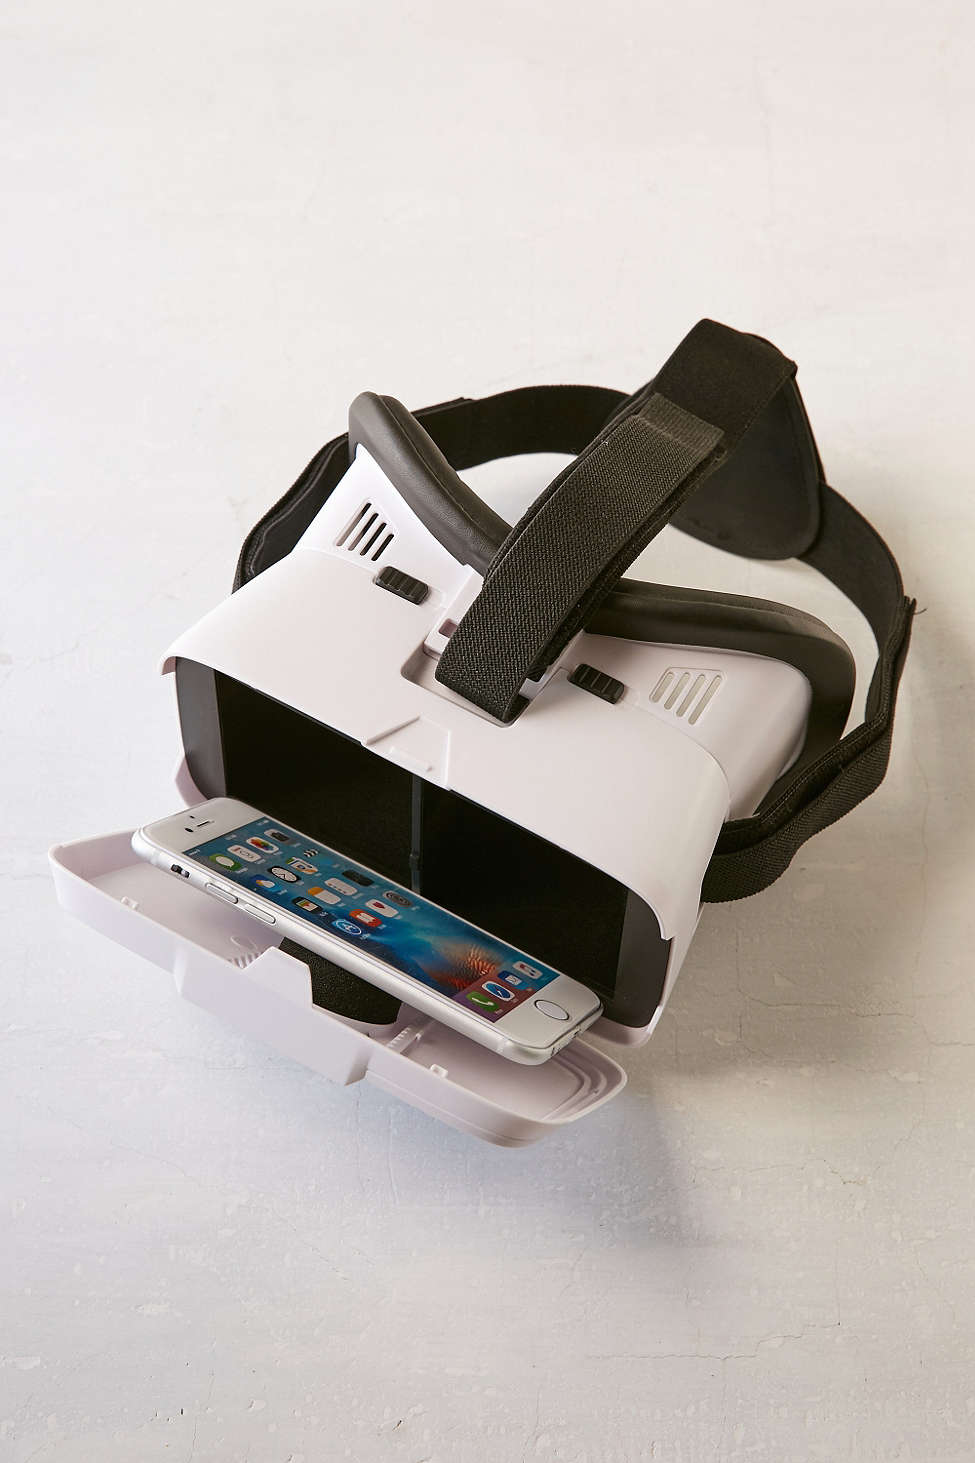 Immerse Plus Virtual Reality Headset $32